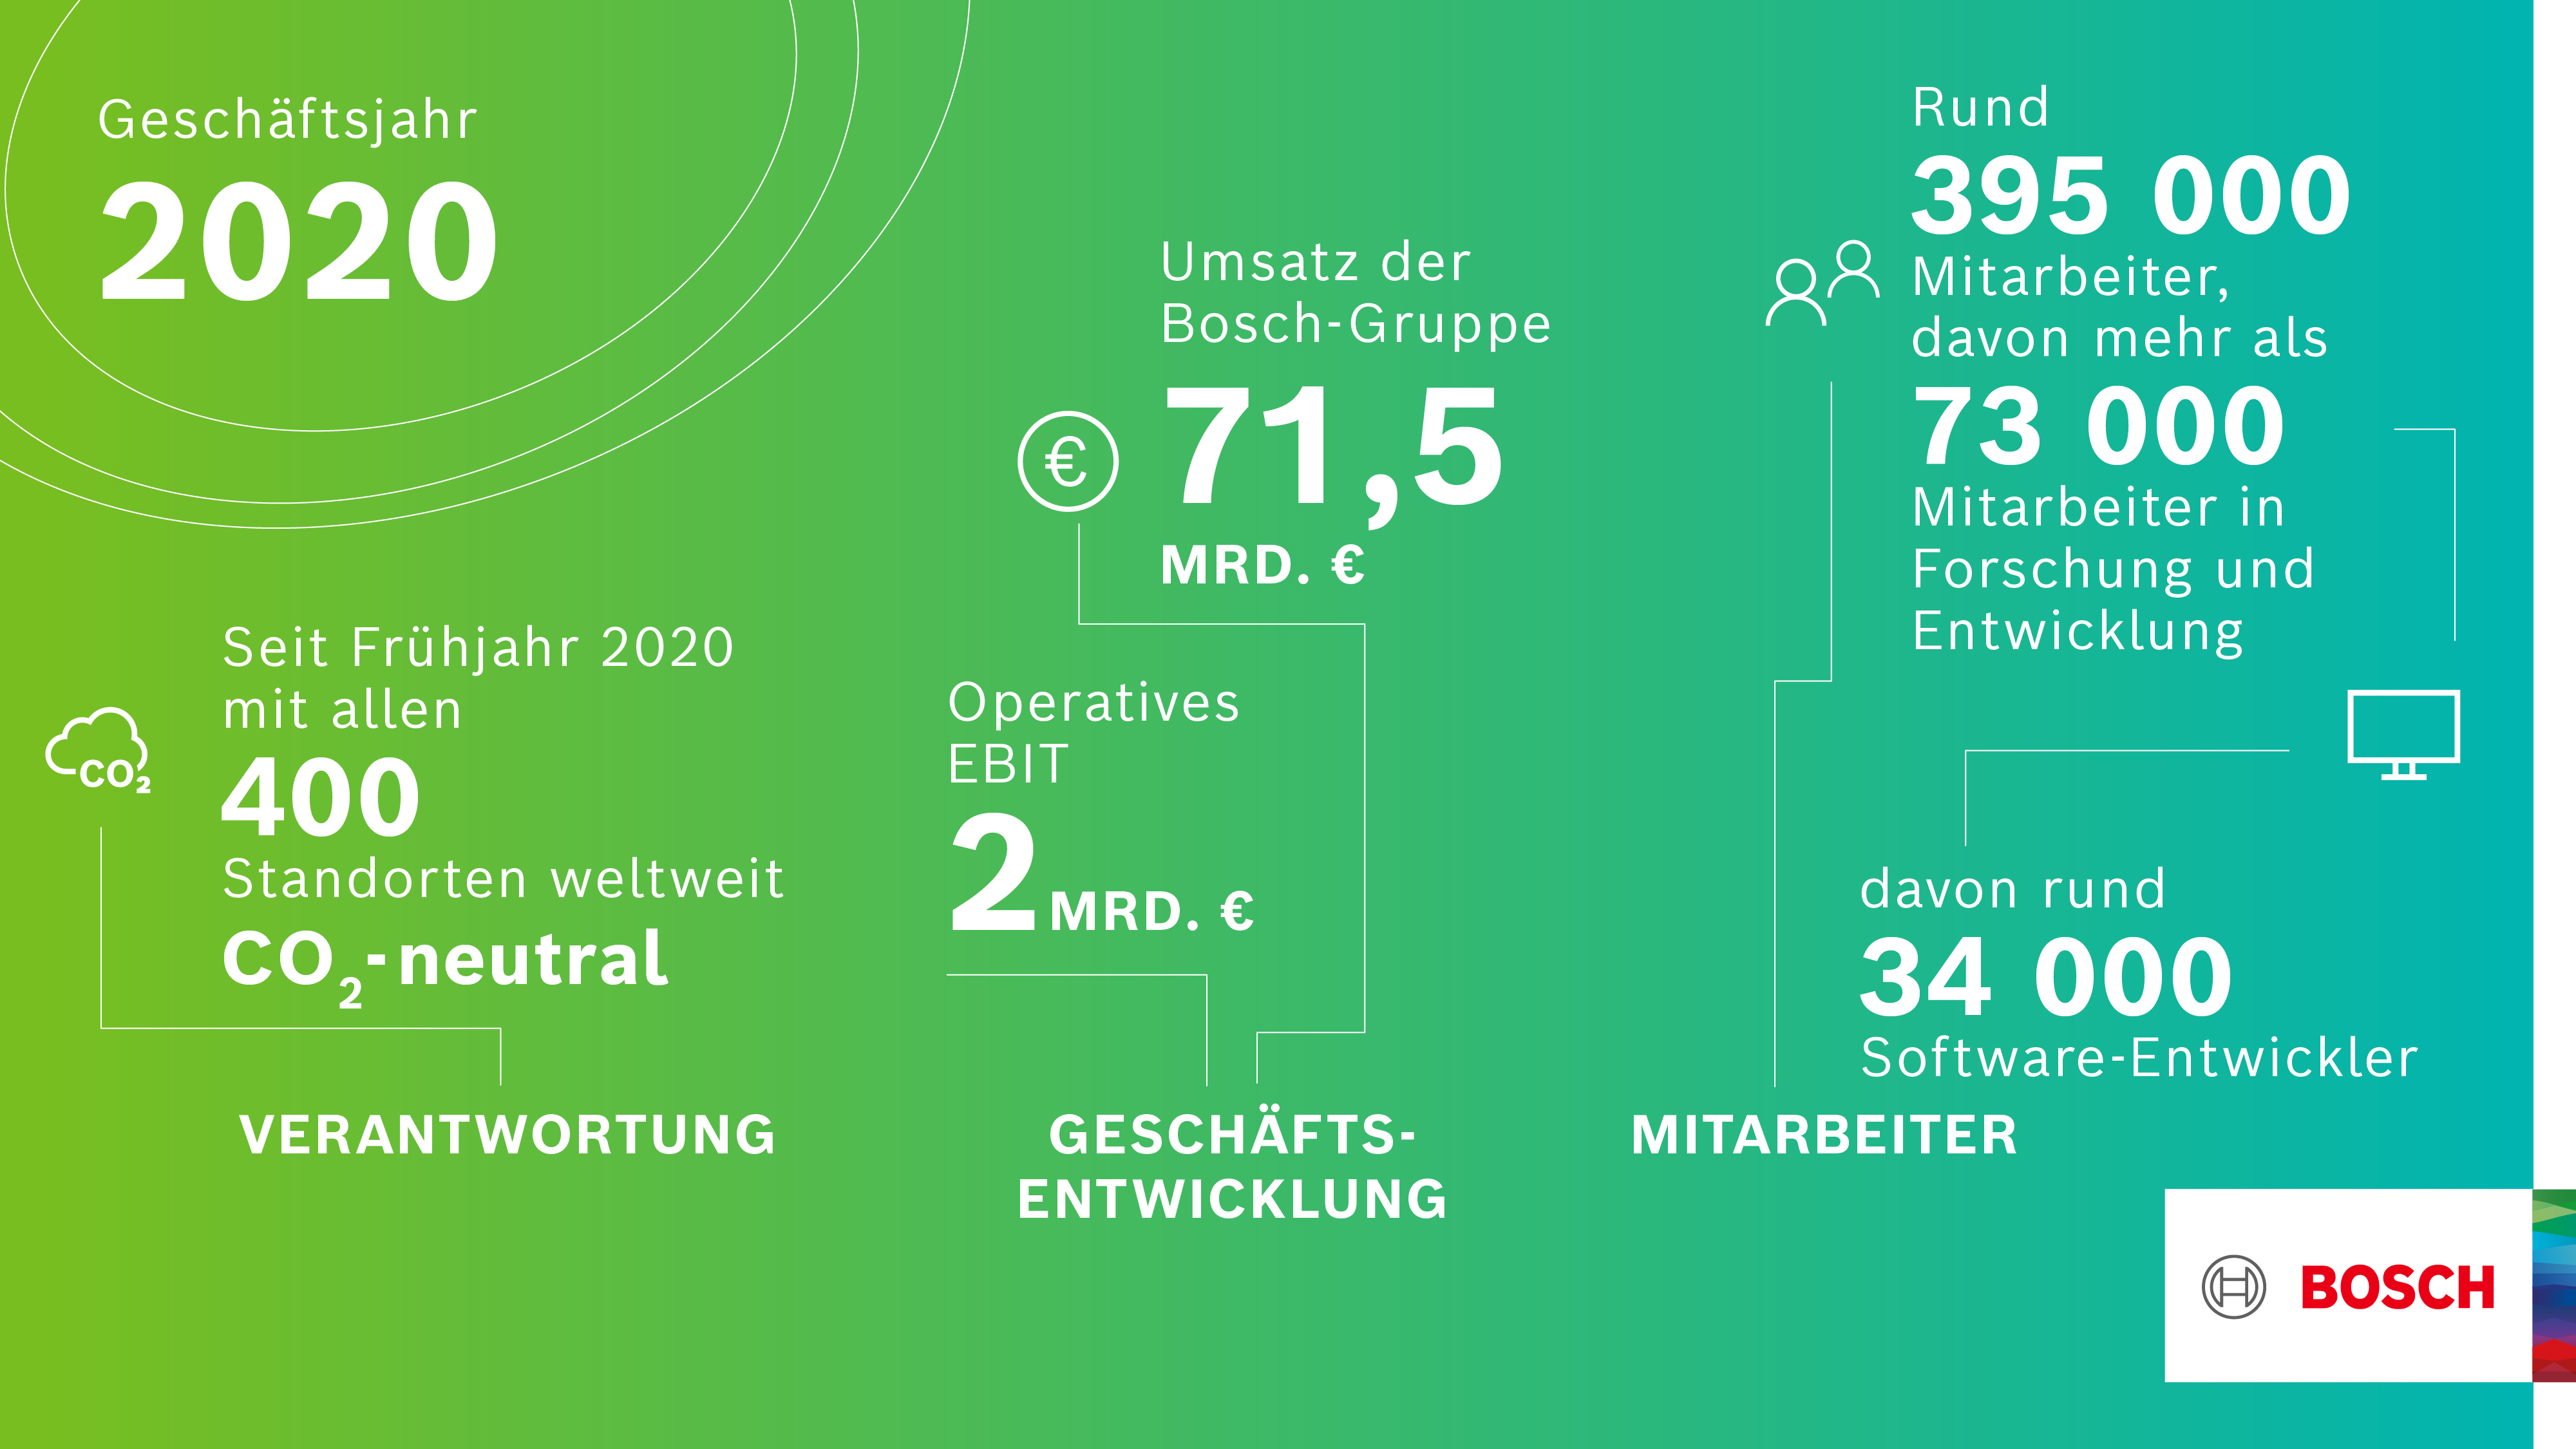 Bosch believes AIoT, electrification, and green hydrogen are the way forward